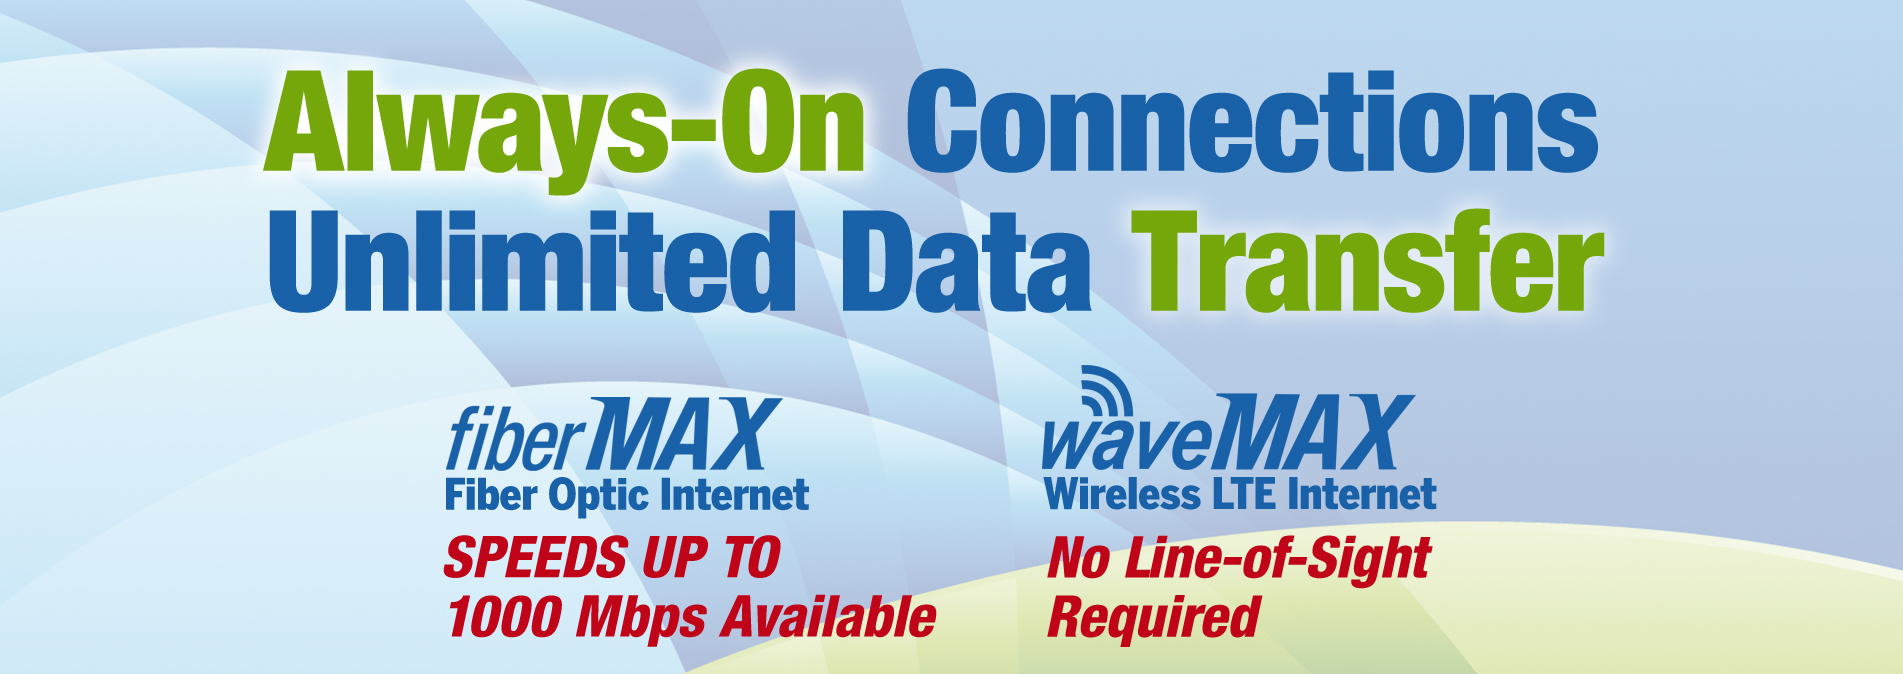 Always-On Connections.  Unlimited Data Transfer.  fiberMAX speeds up to 1000Mbps.  waveMAX LTE no line-of-sight required.